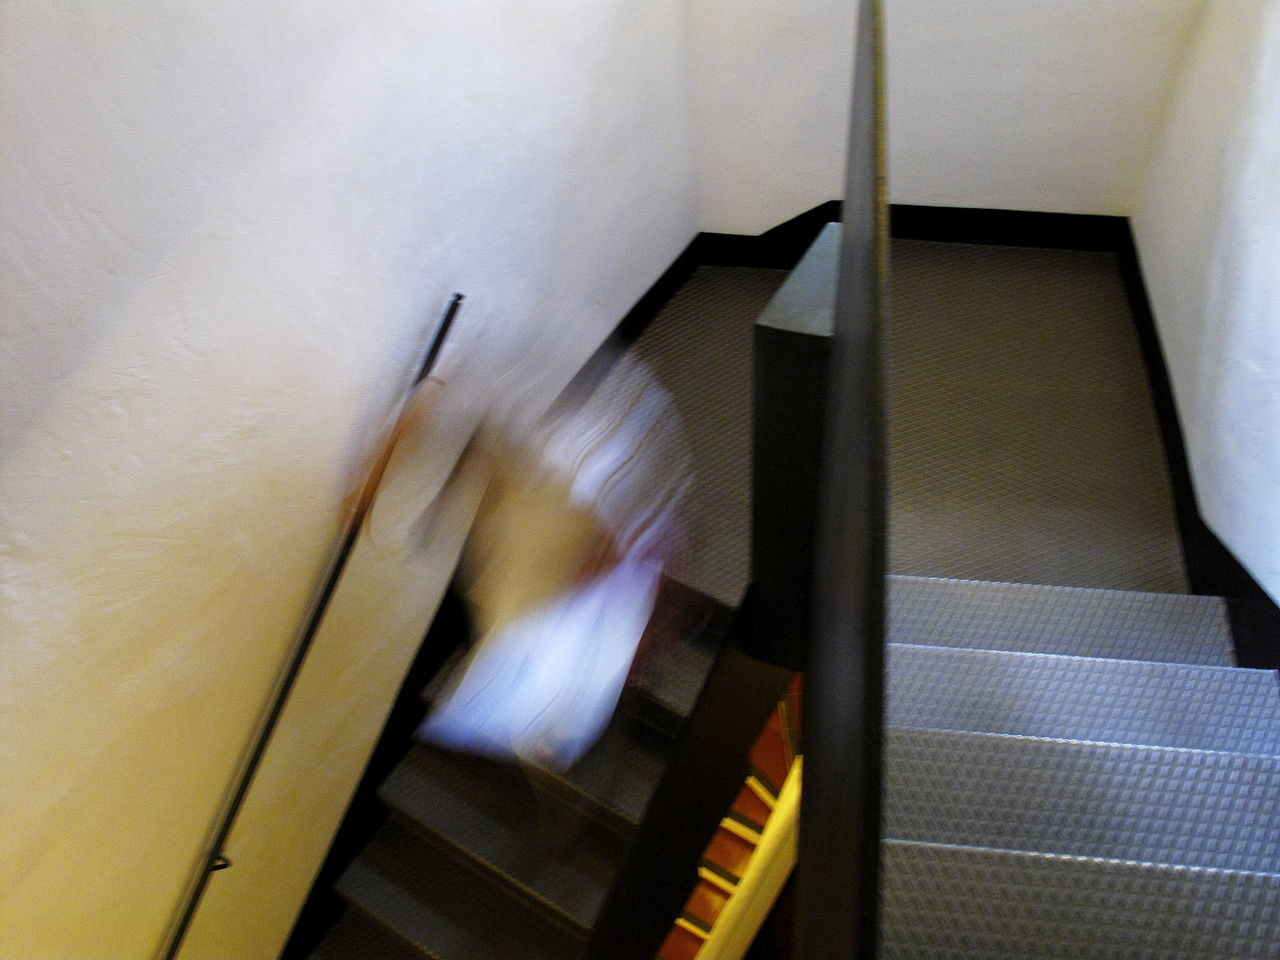 Architecture Close-up Day Domestic Room Home Interior Indoors  Stair Staircase Stairs Step Steps